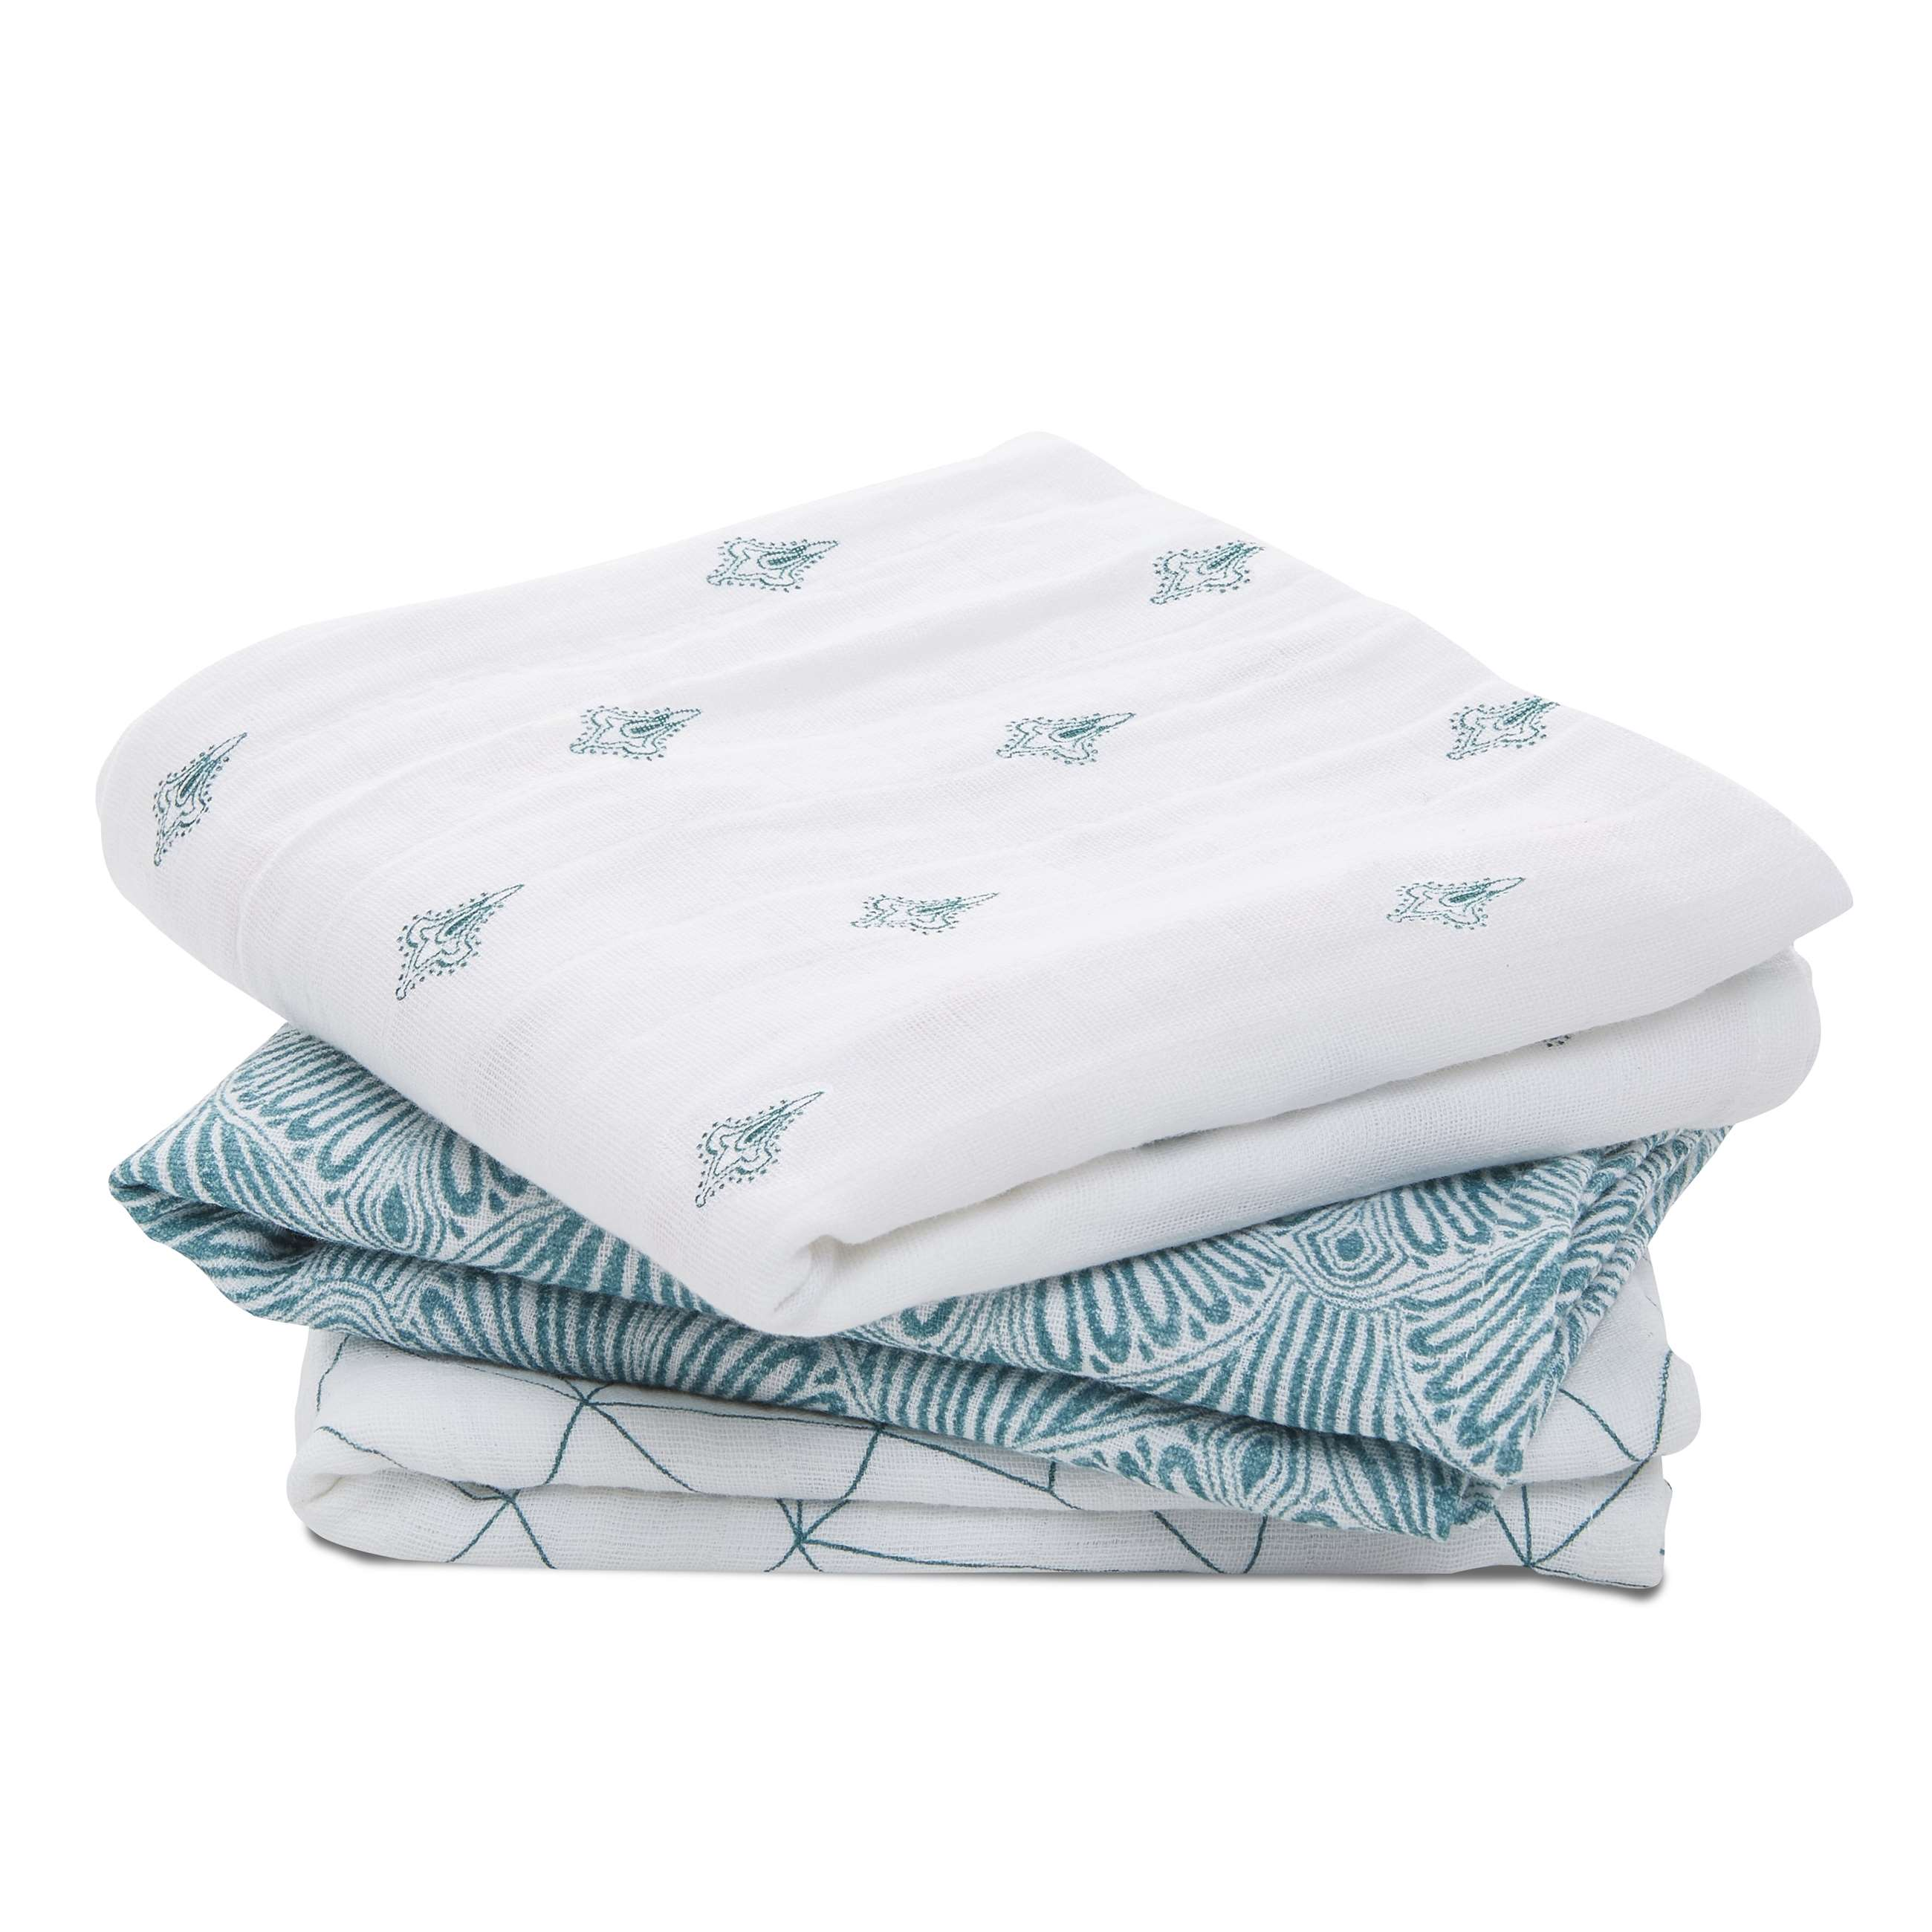 7252_1-classic-musy-squares-3pk-paisley-teal